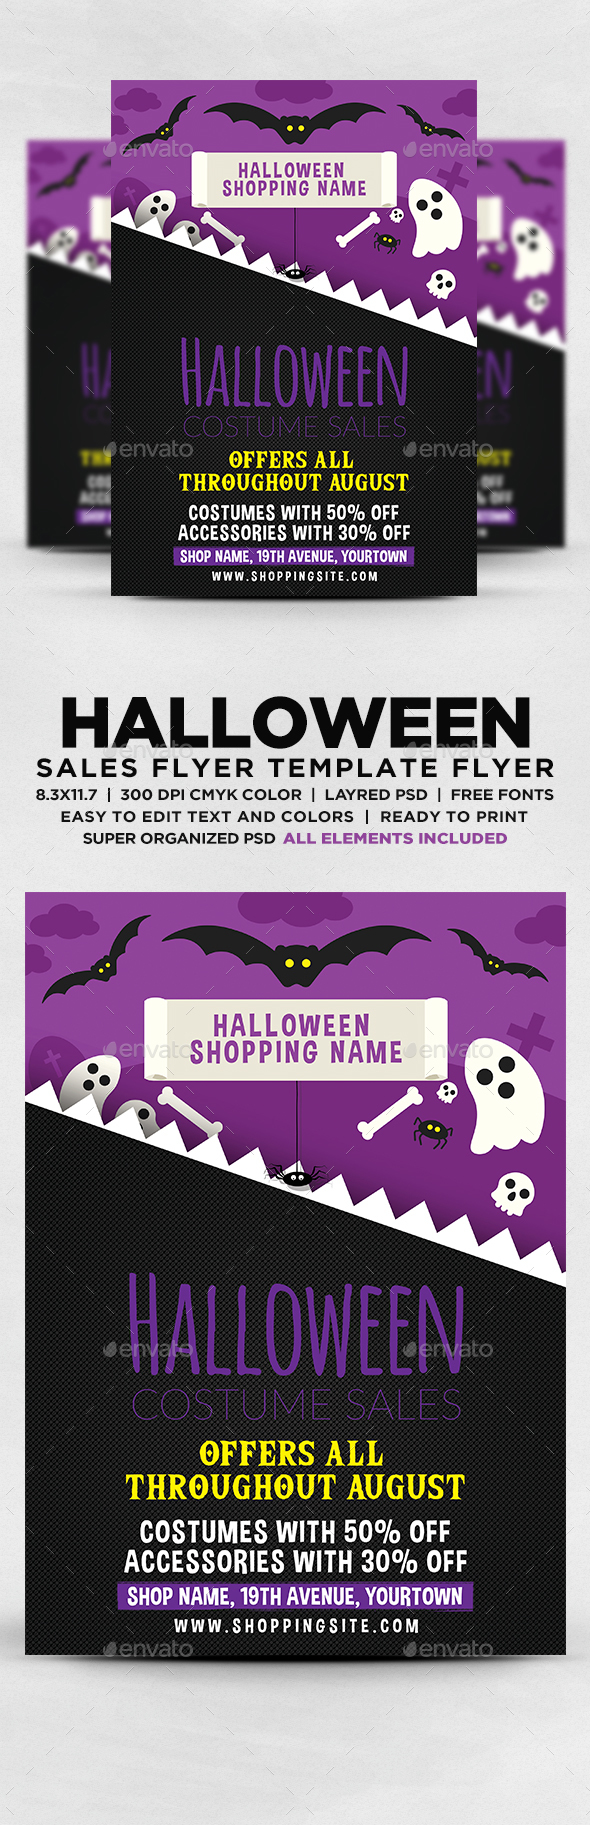 Halloween Costume Sales Flyer